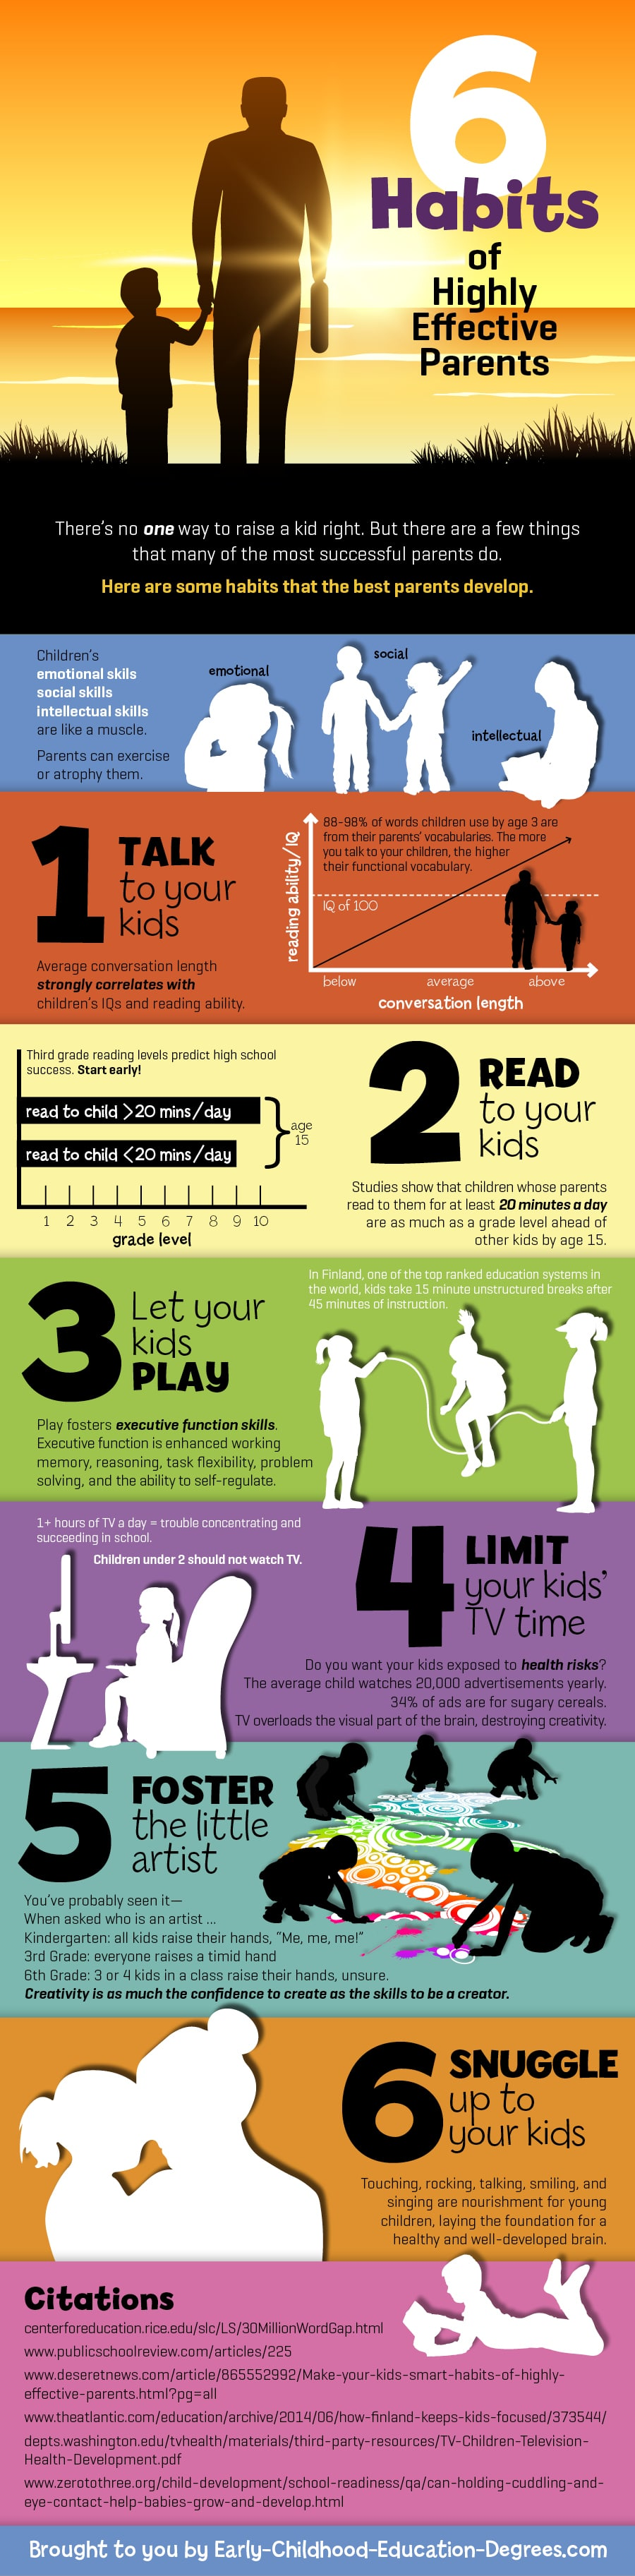 6 Habits of Highly Effective Parents